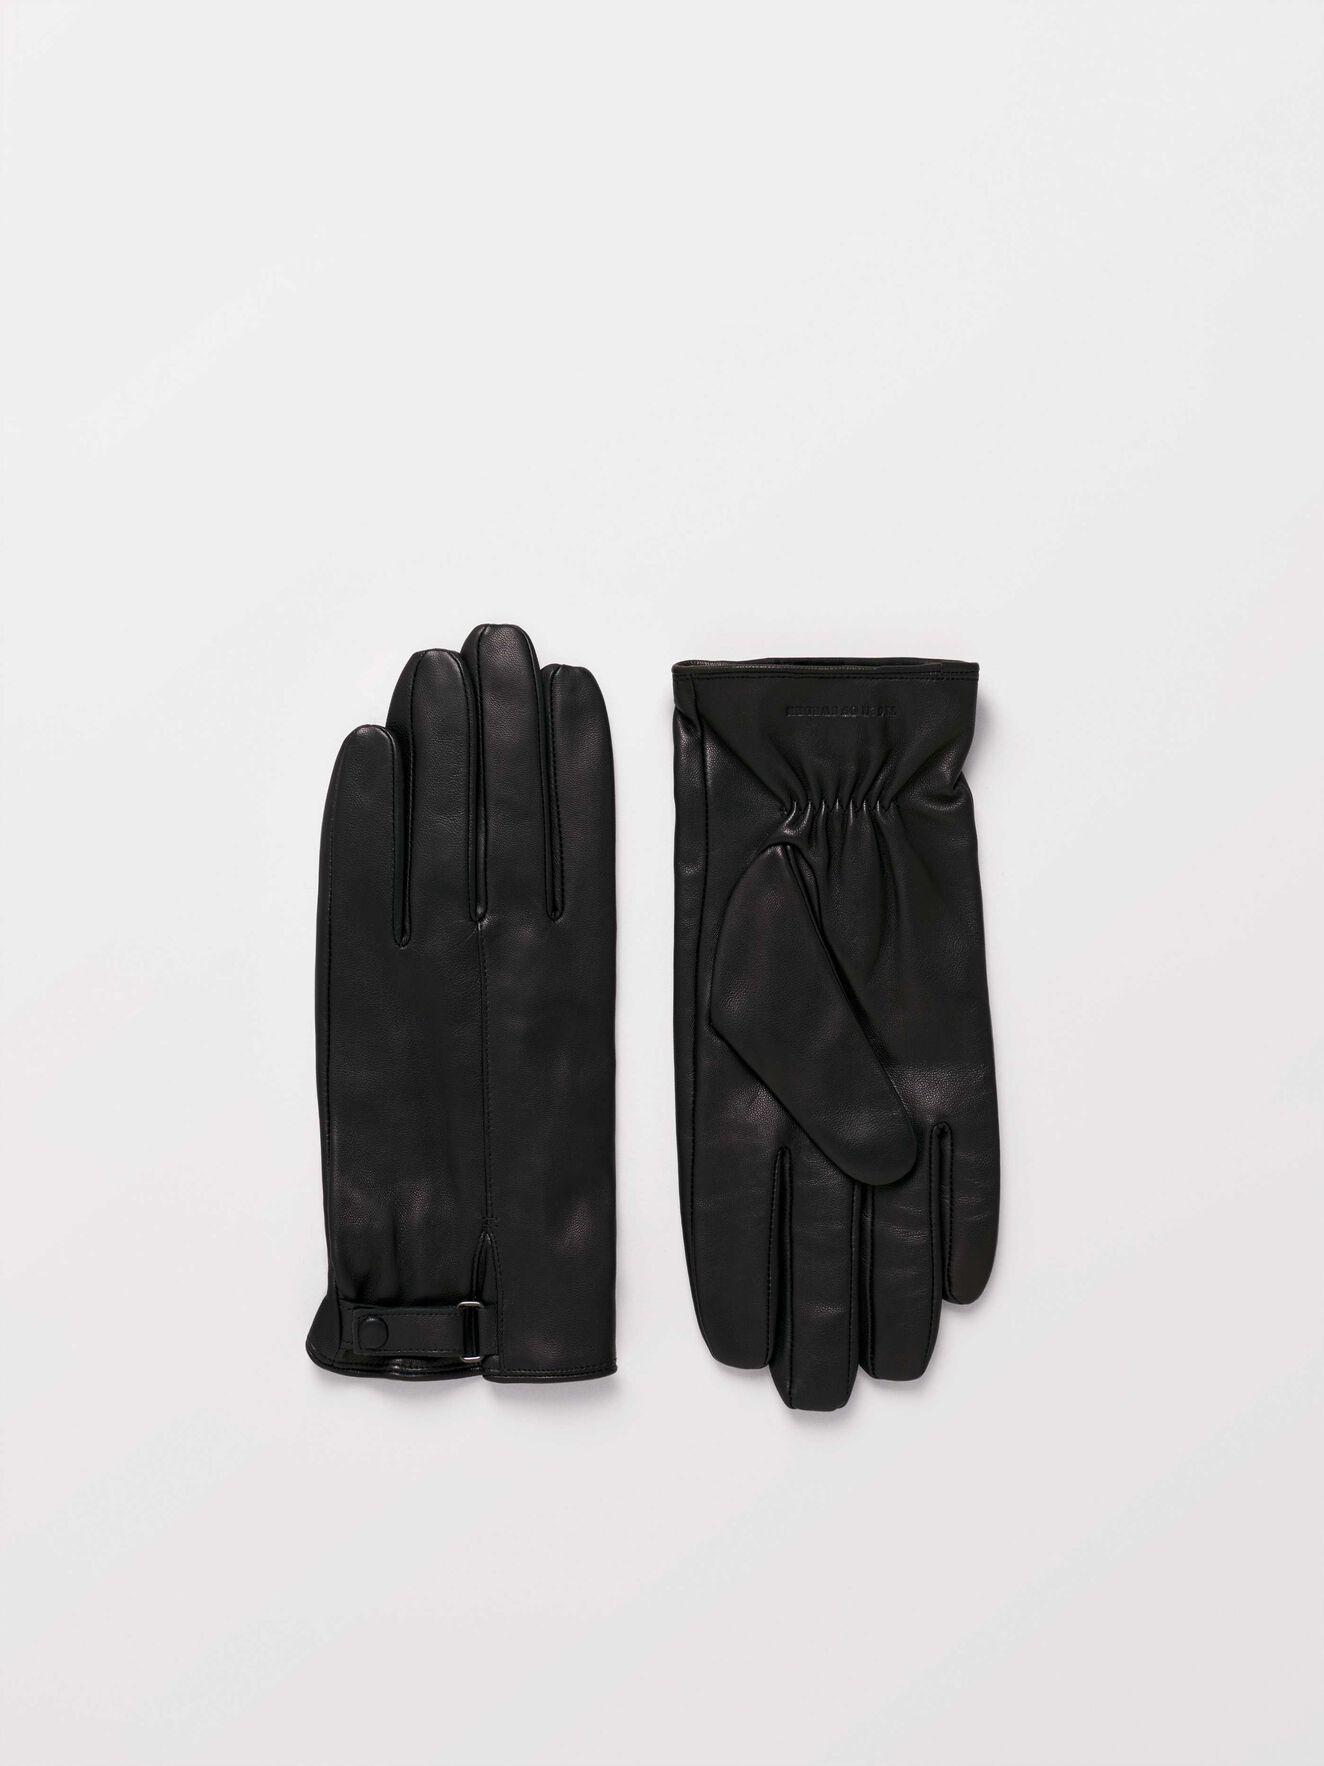 Grove Gloves in Black from Tiger of Sweden